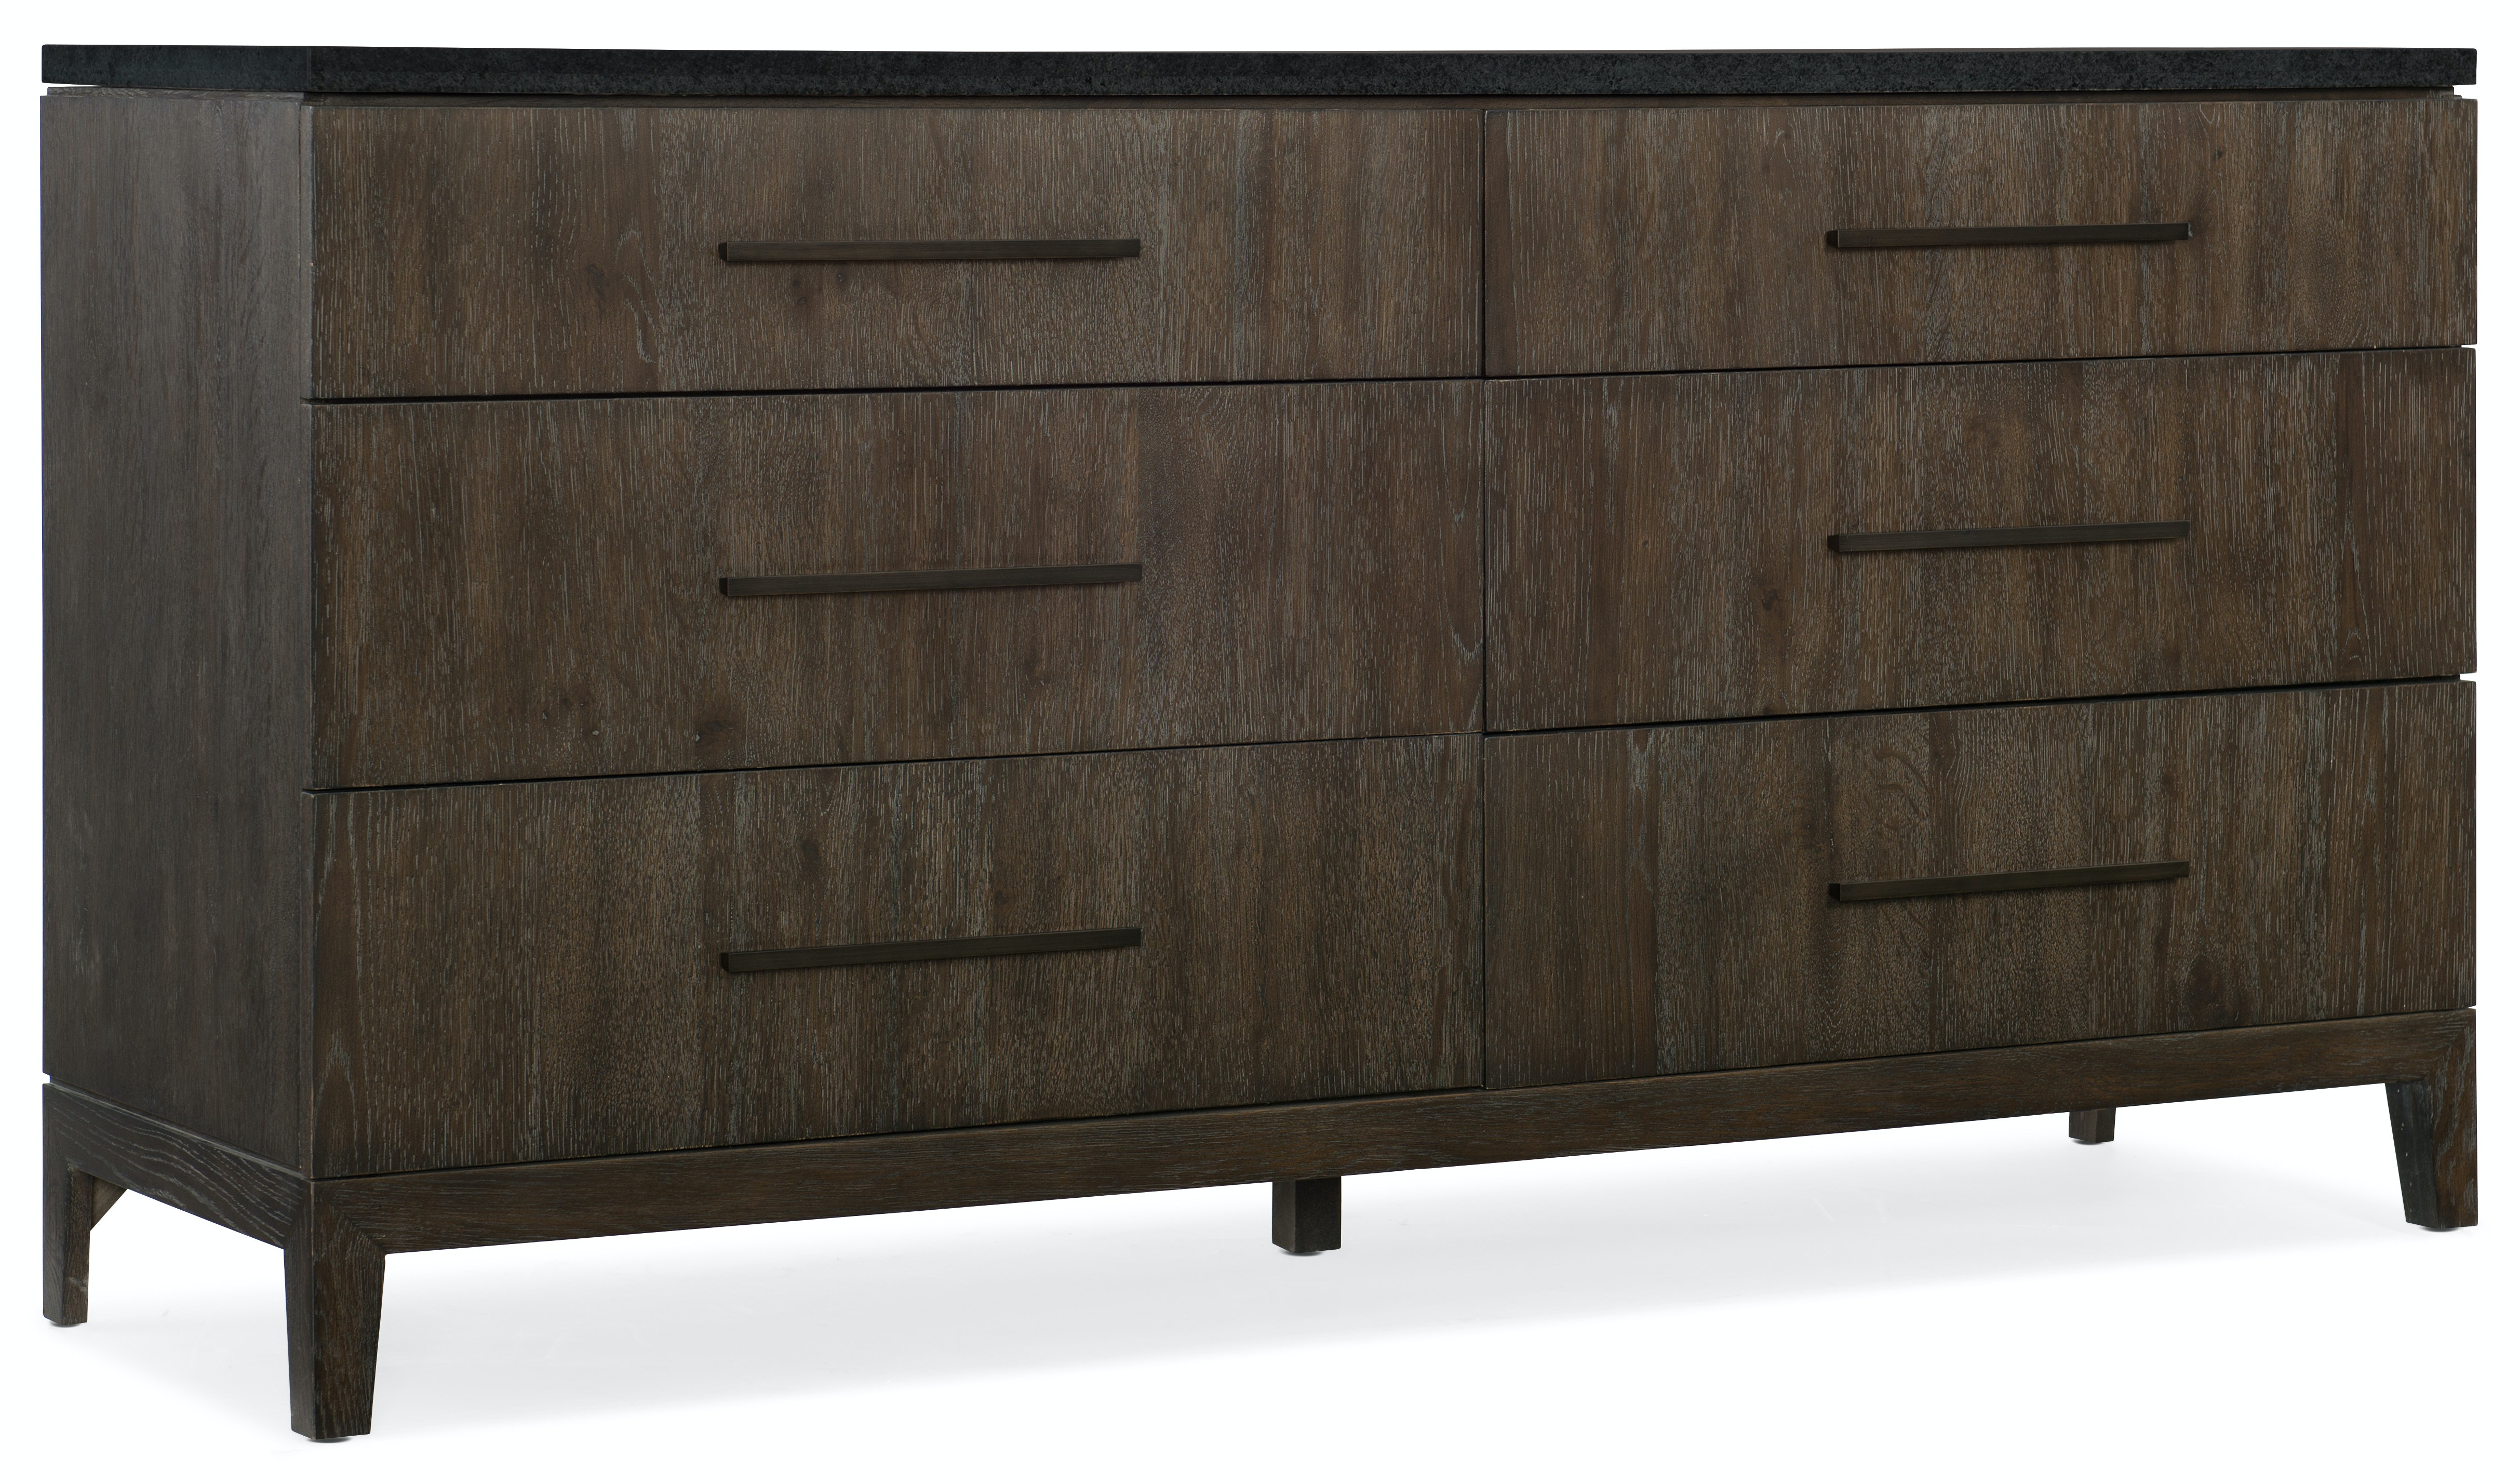 Hooker Furniture Miramar Aventura Raphael Six Drawer Dresser 6202 90002 DKW